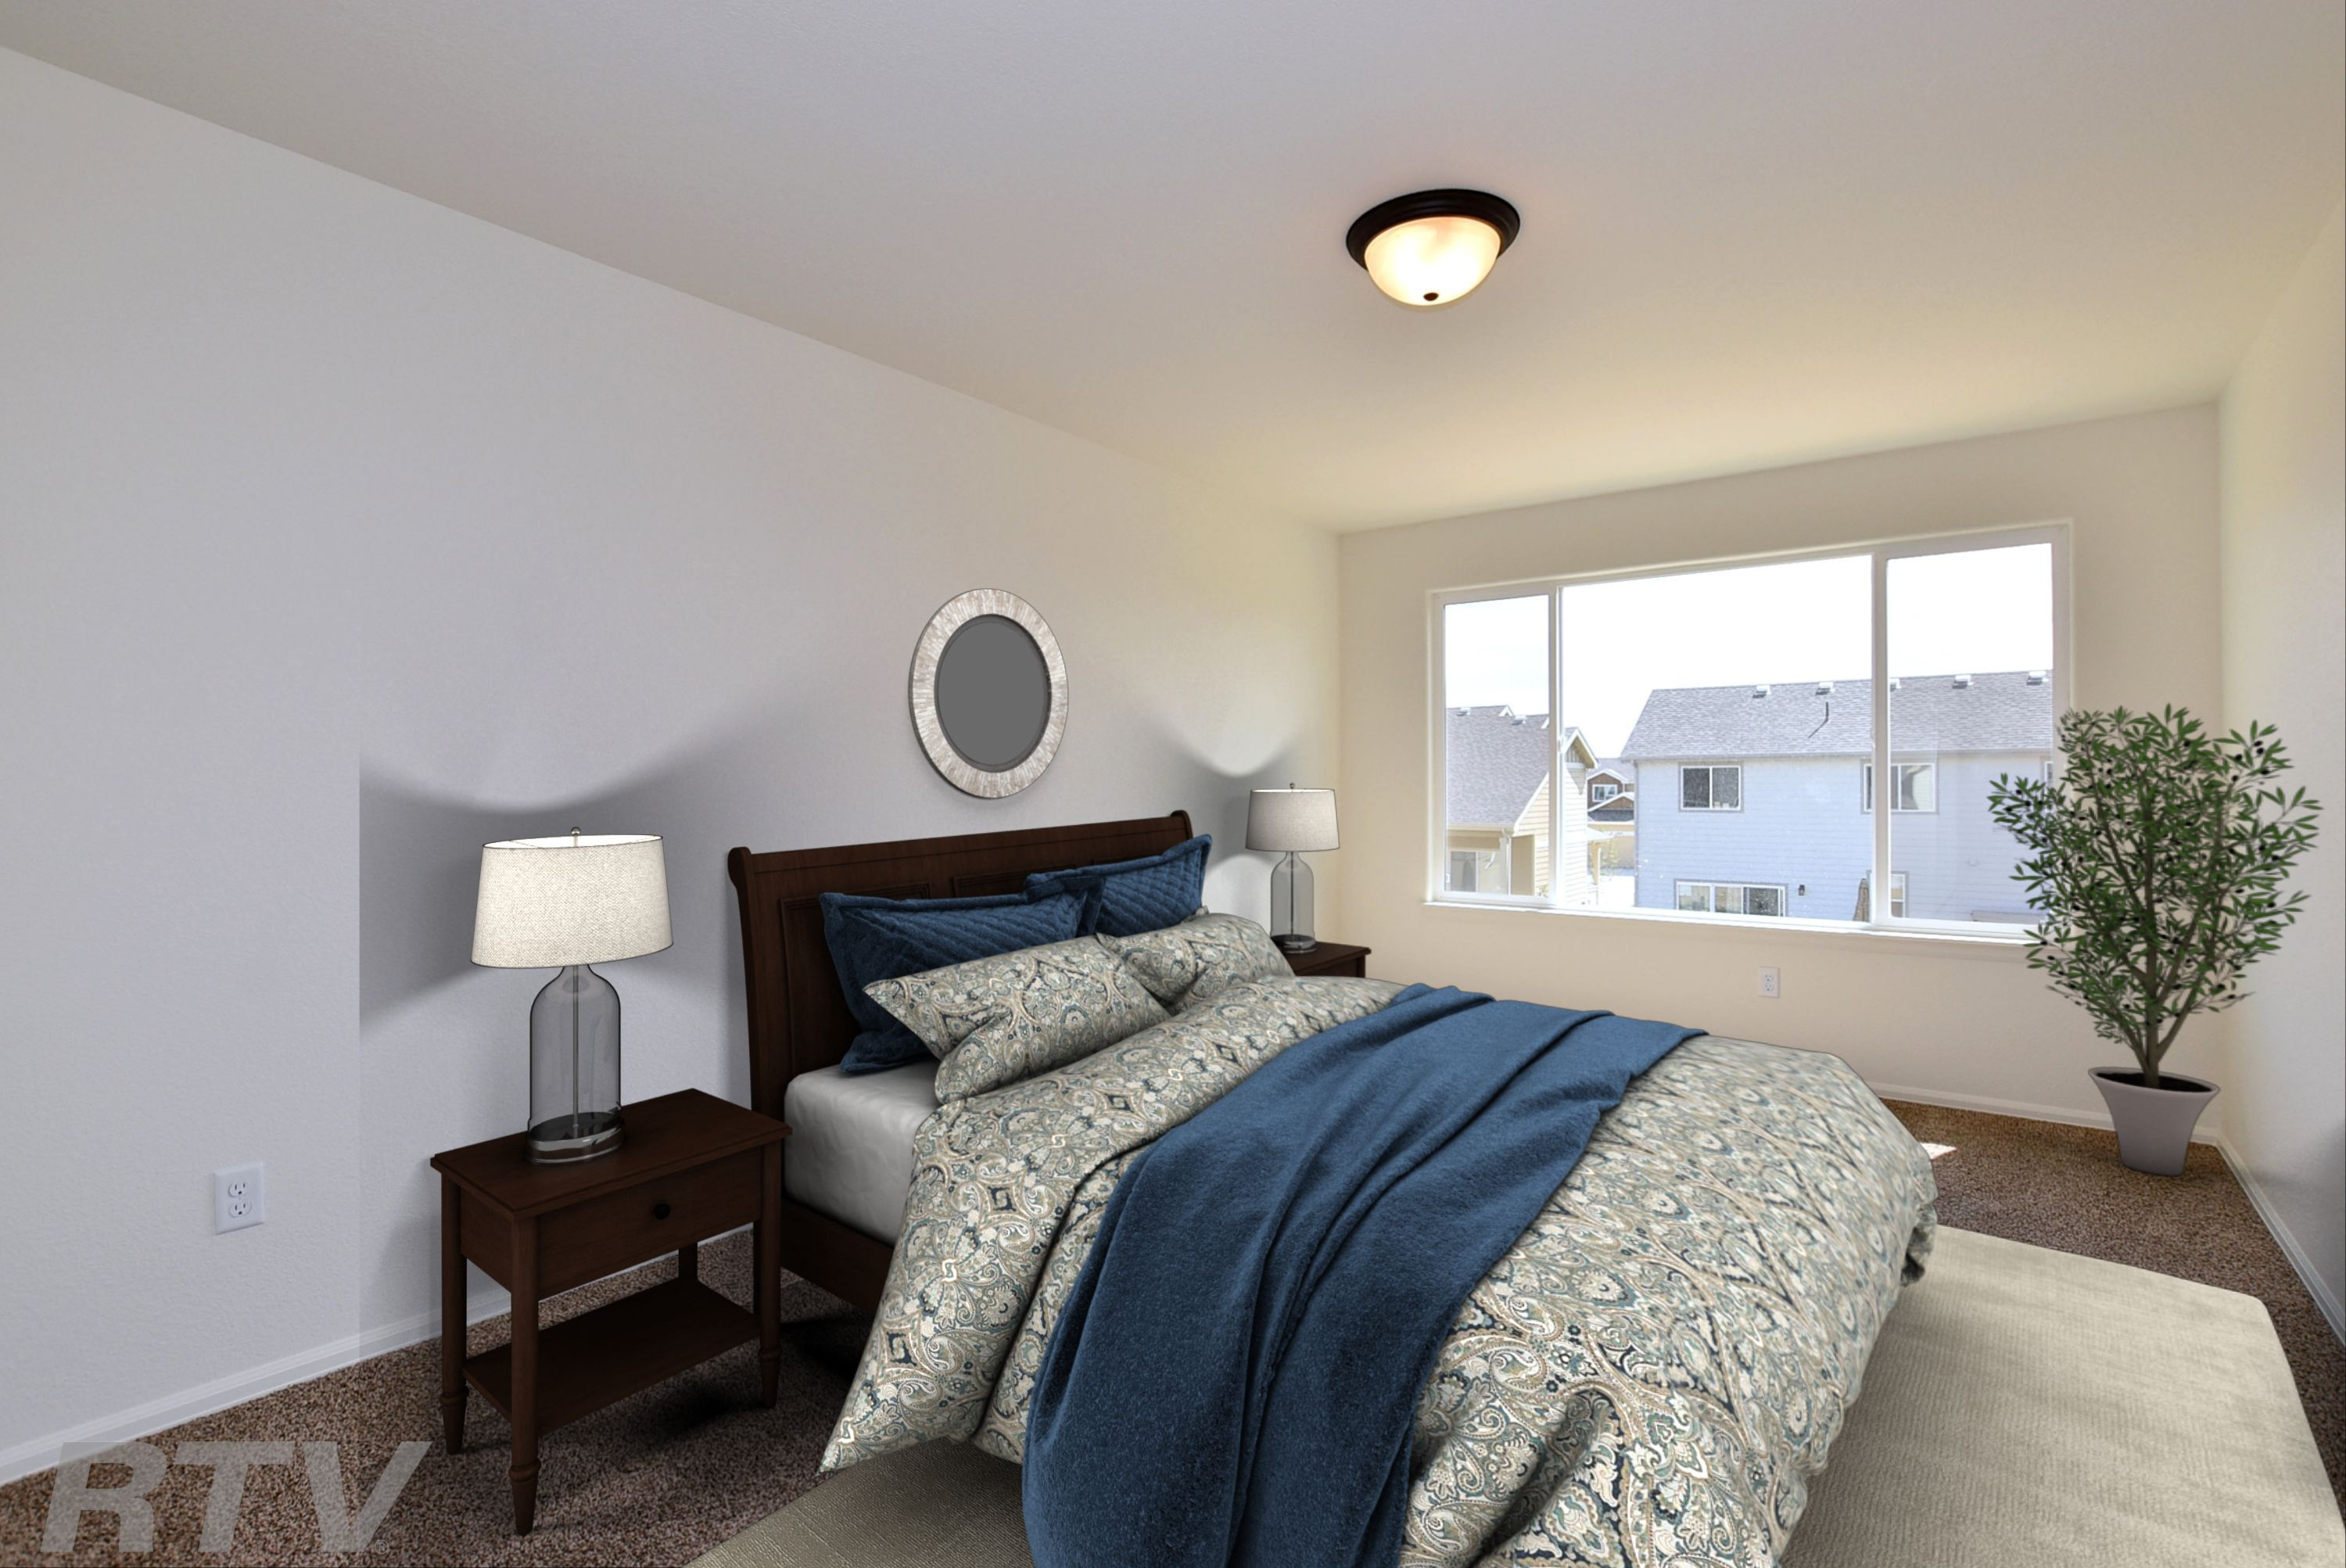 Bedroom featured in the New Jersey By Journey Homes in Greeley, CO